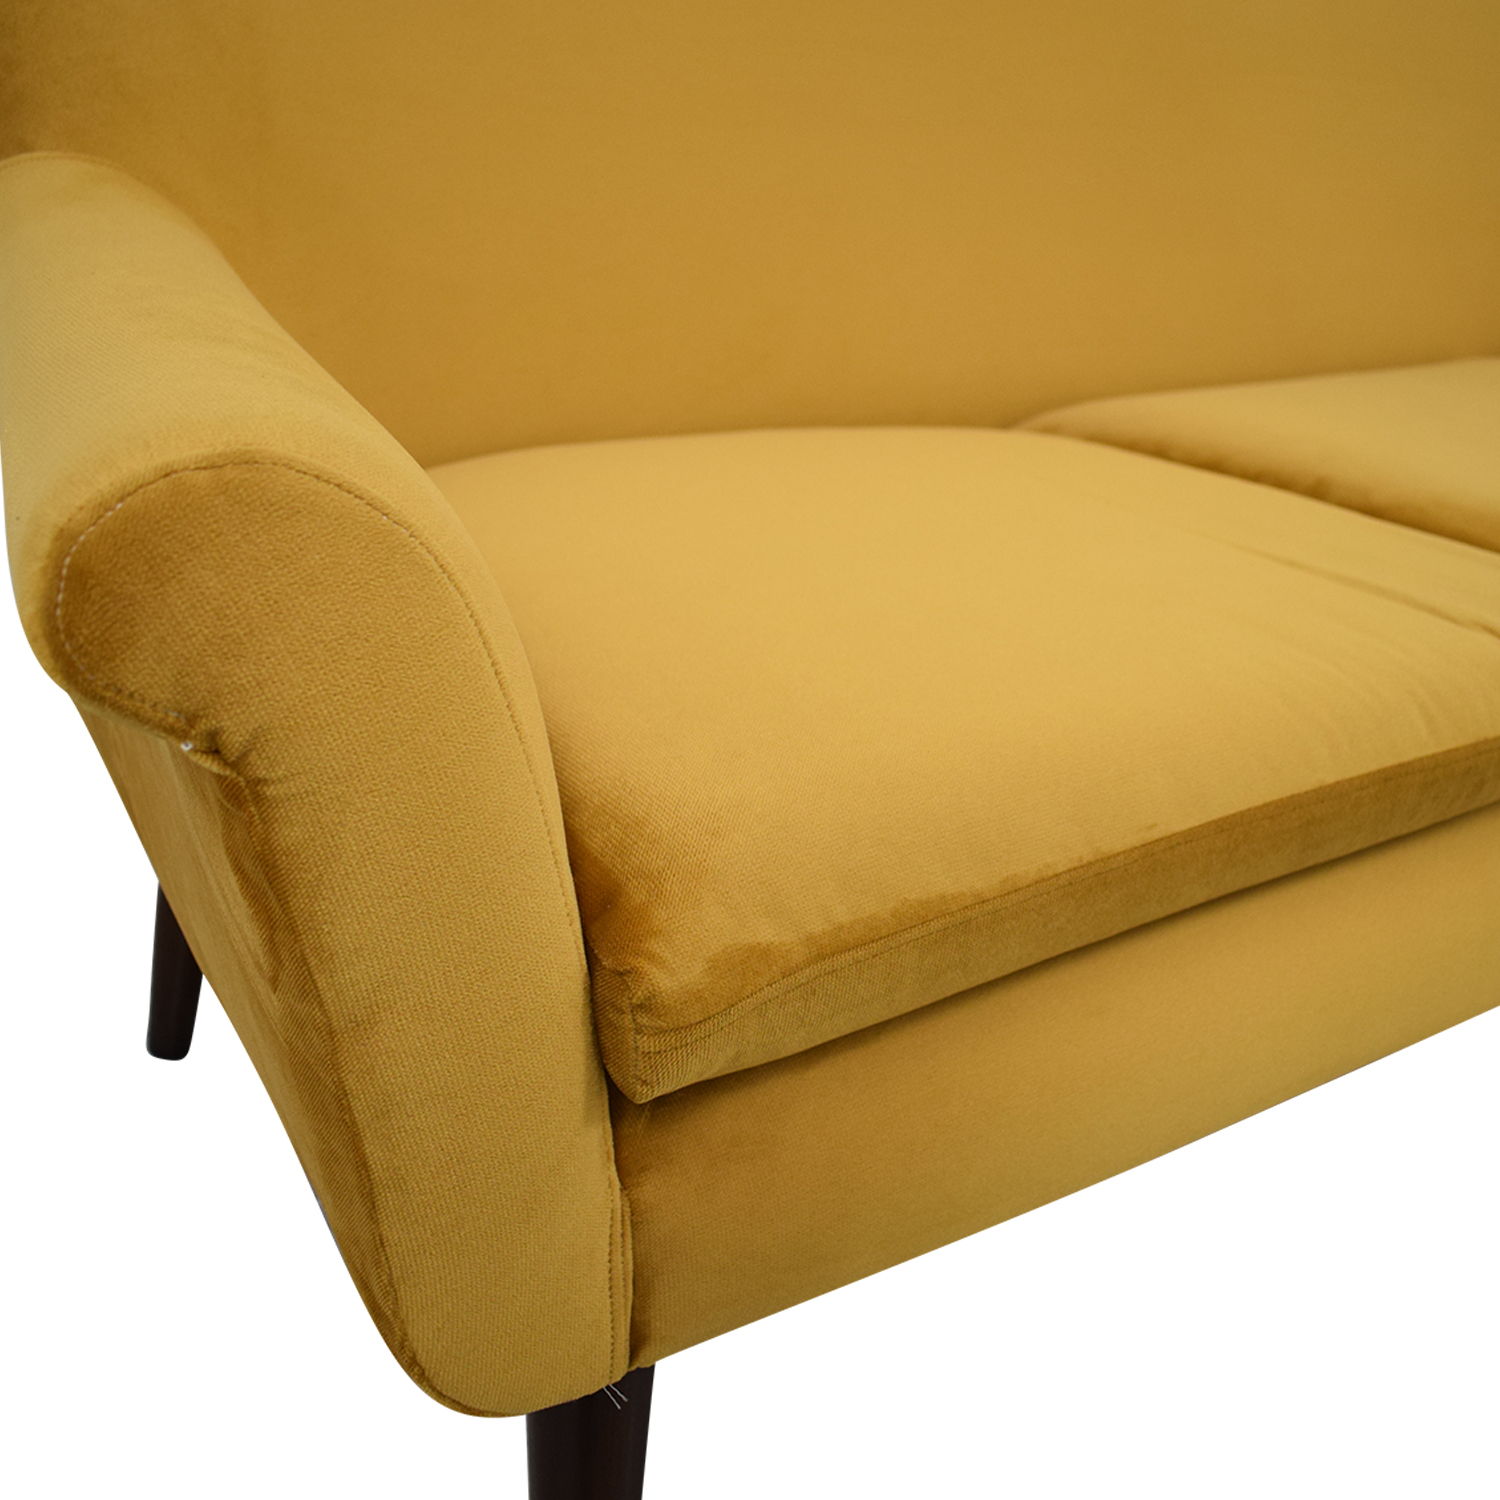 Urban Outfitters Urban Outfitters Yellow Velvet Sofa on sale